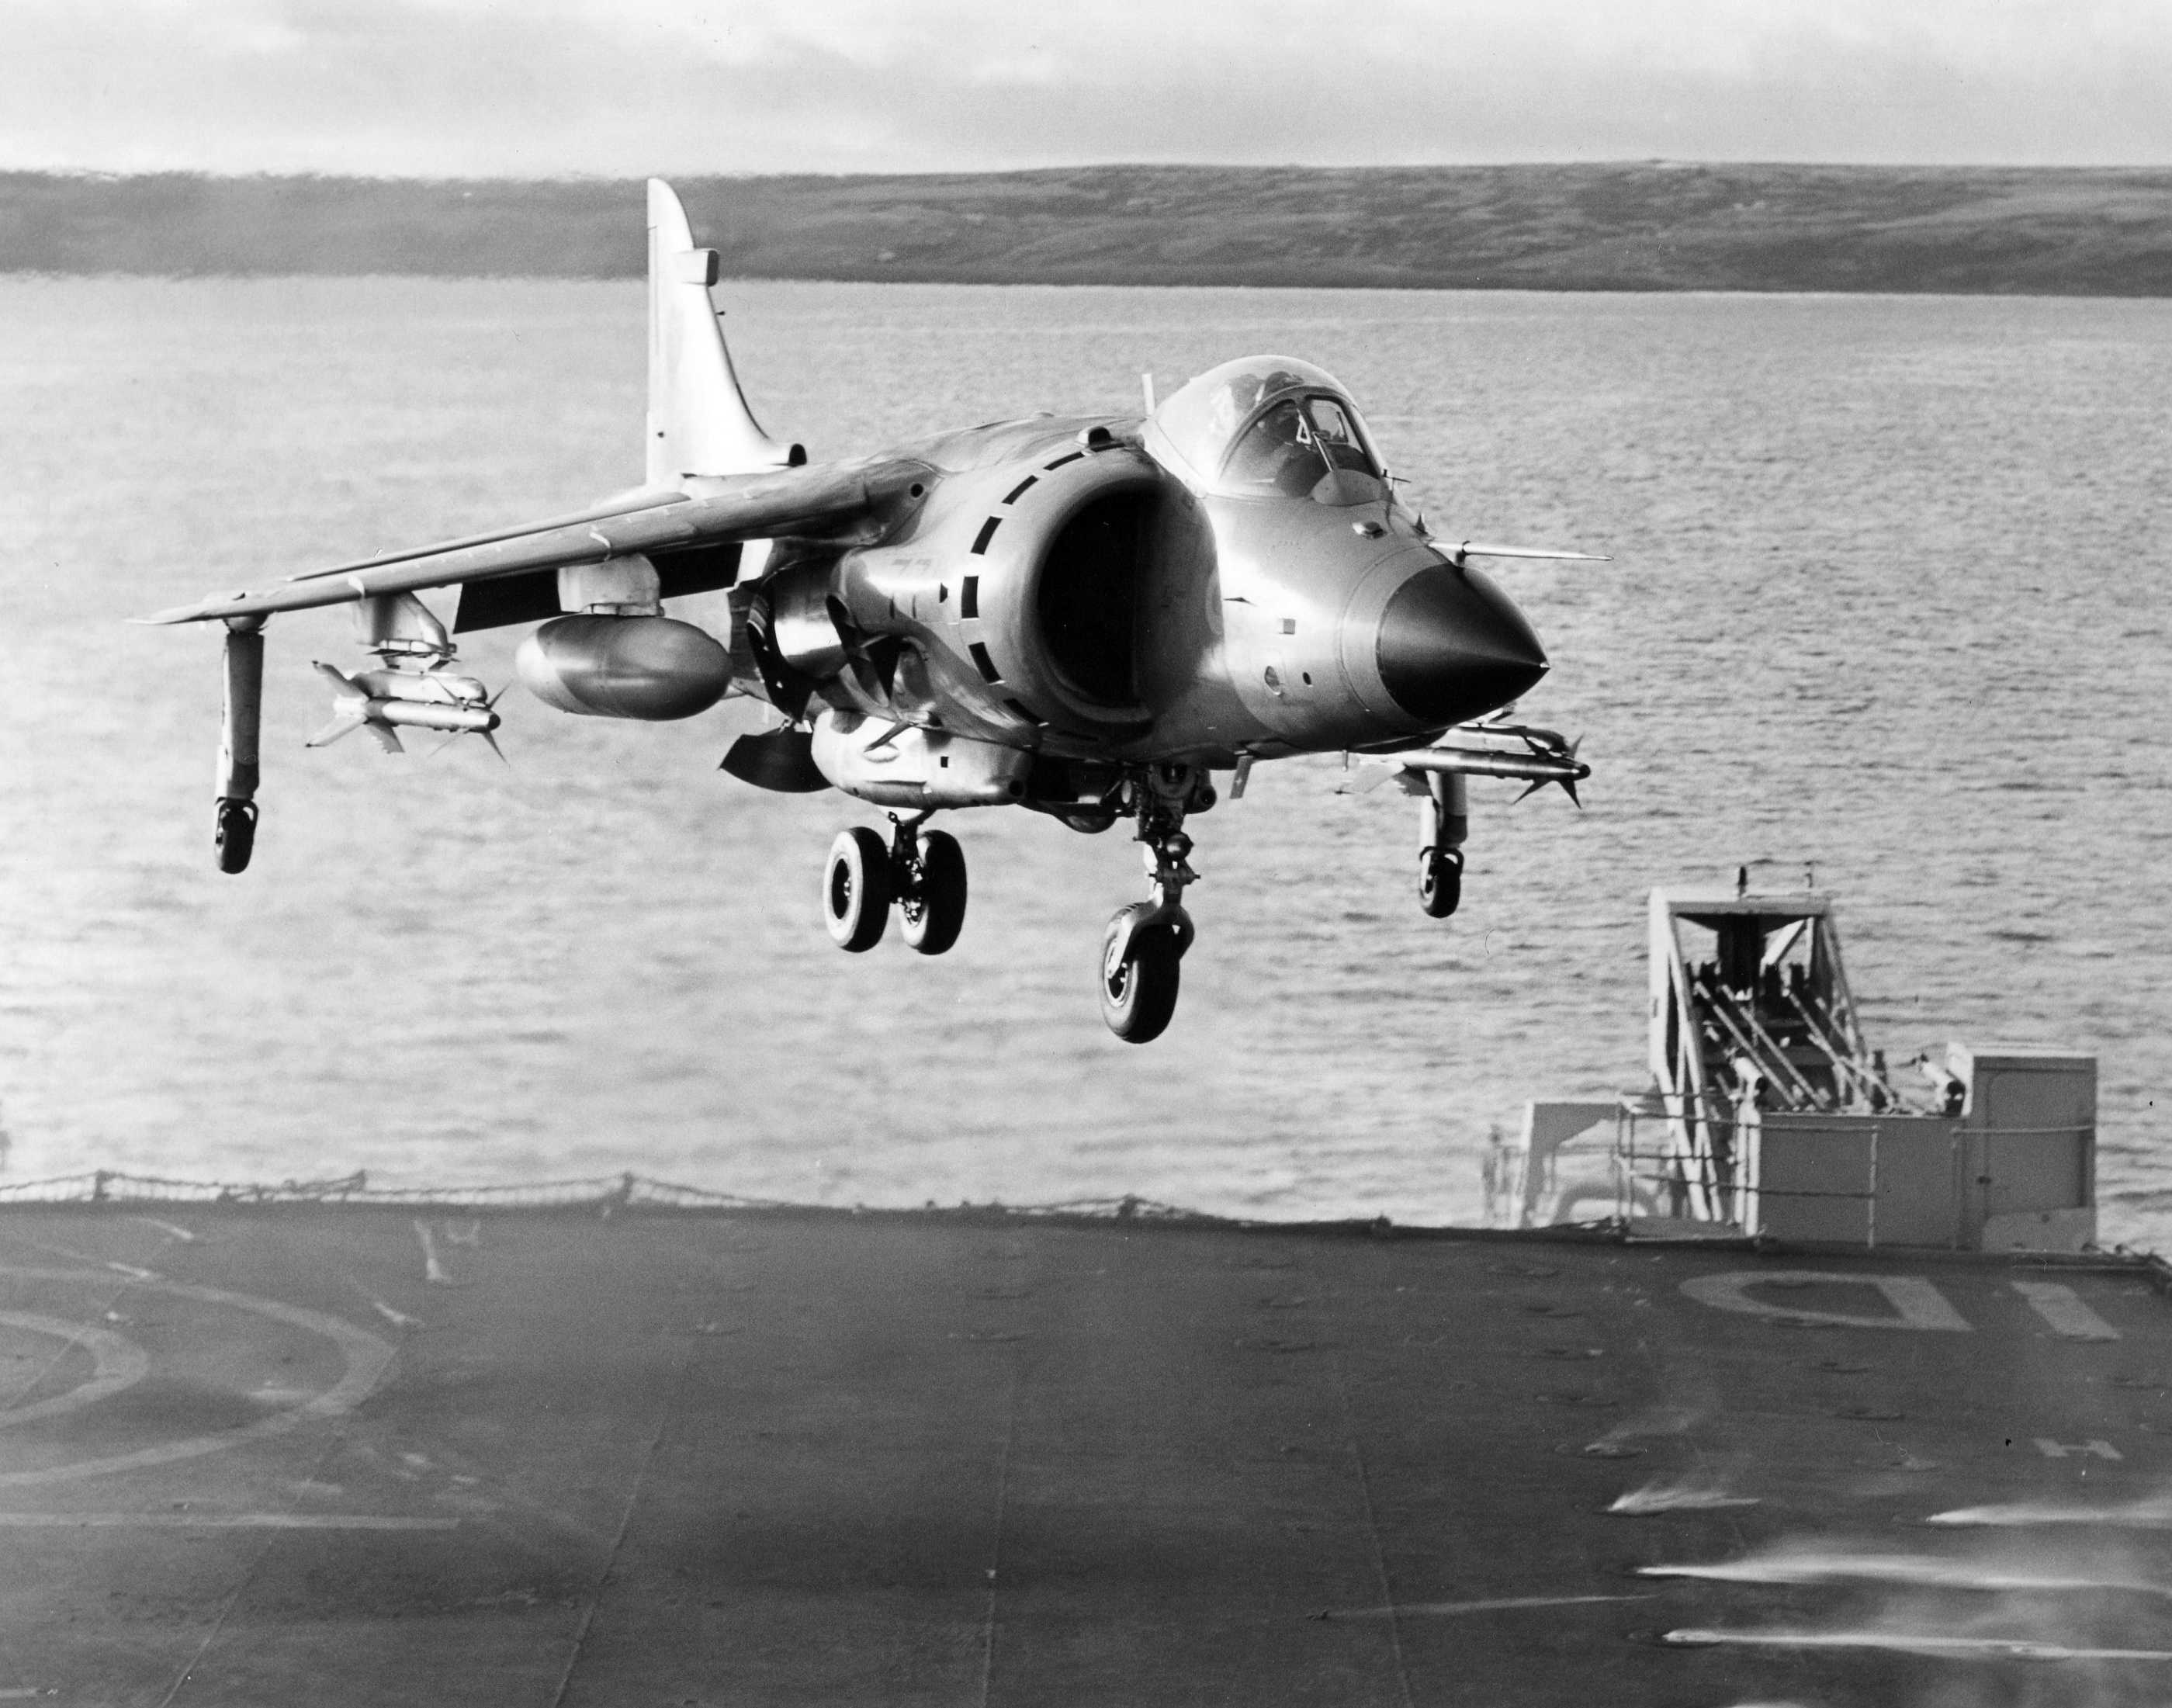 Harrier_Falklands_Islands_War